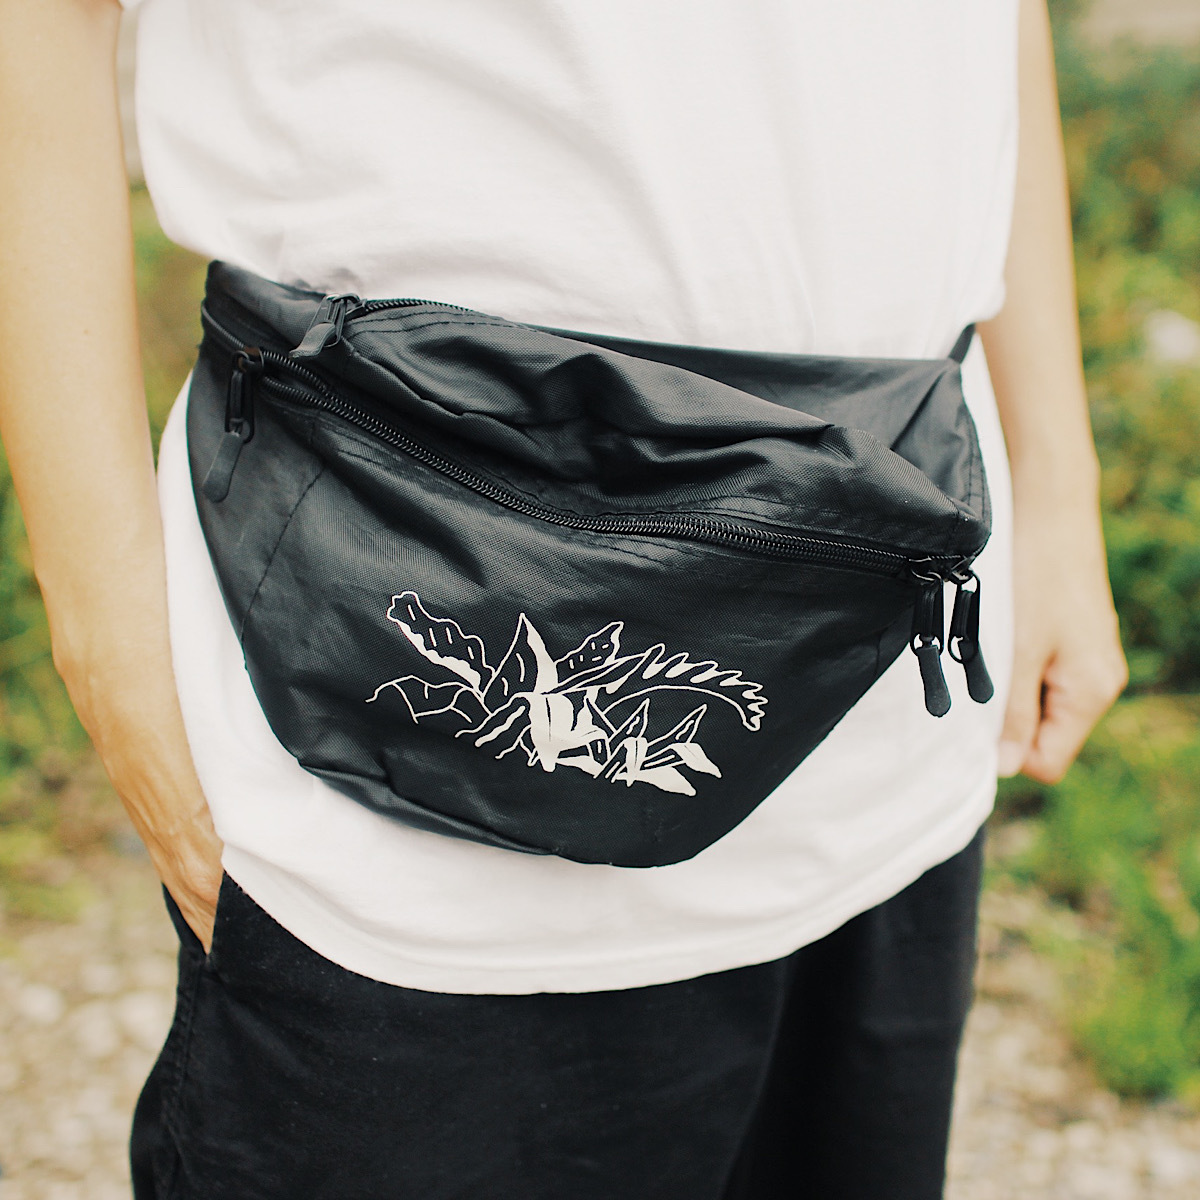 IN THE PARK nylon pouch